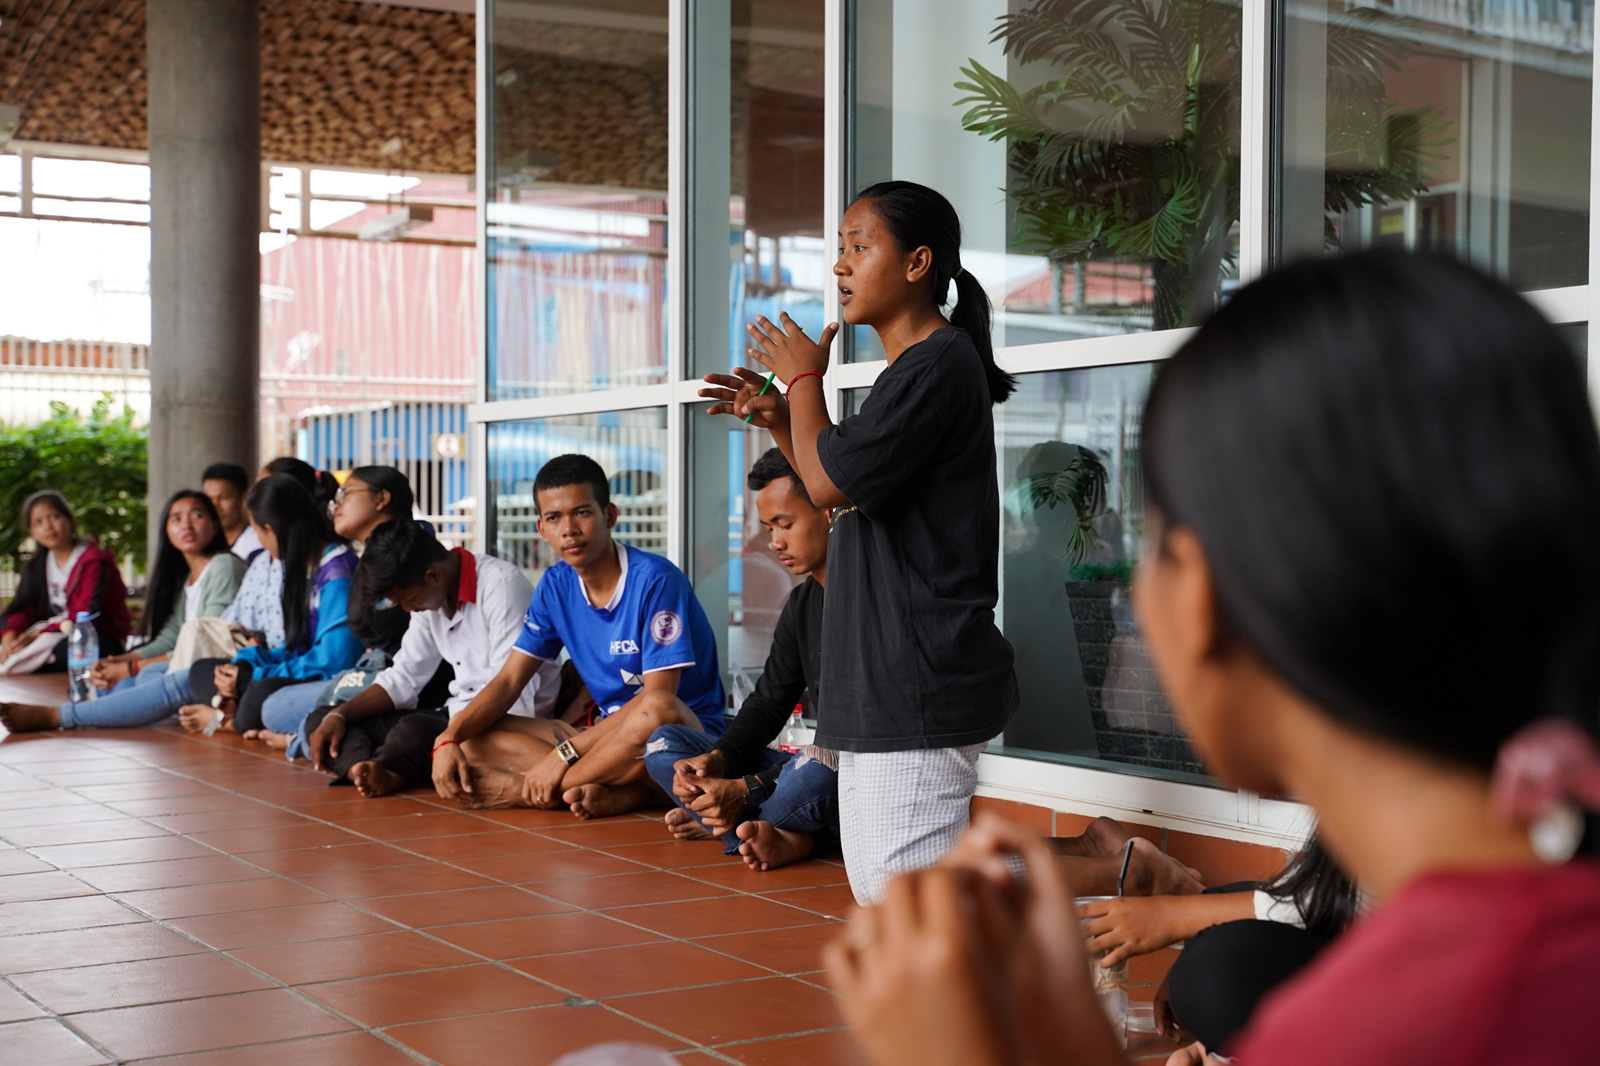 Sreymai speaks during a meeting with other youth leaders in her community to discuss upcoming community service initiatives.